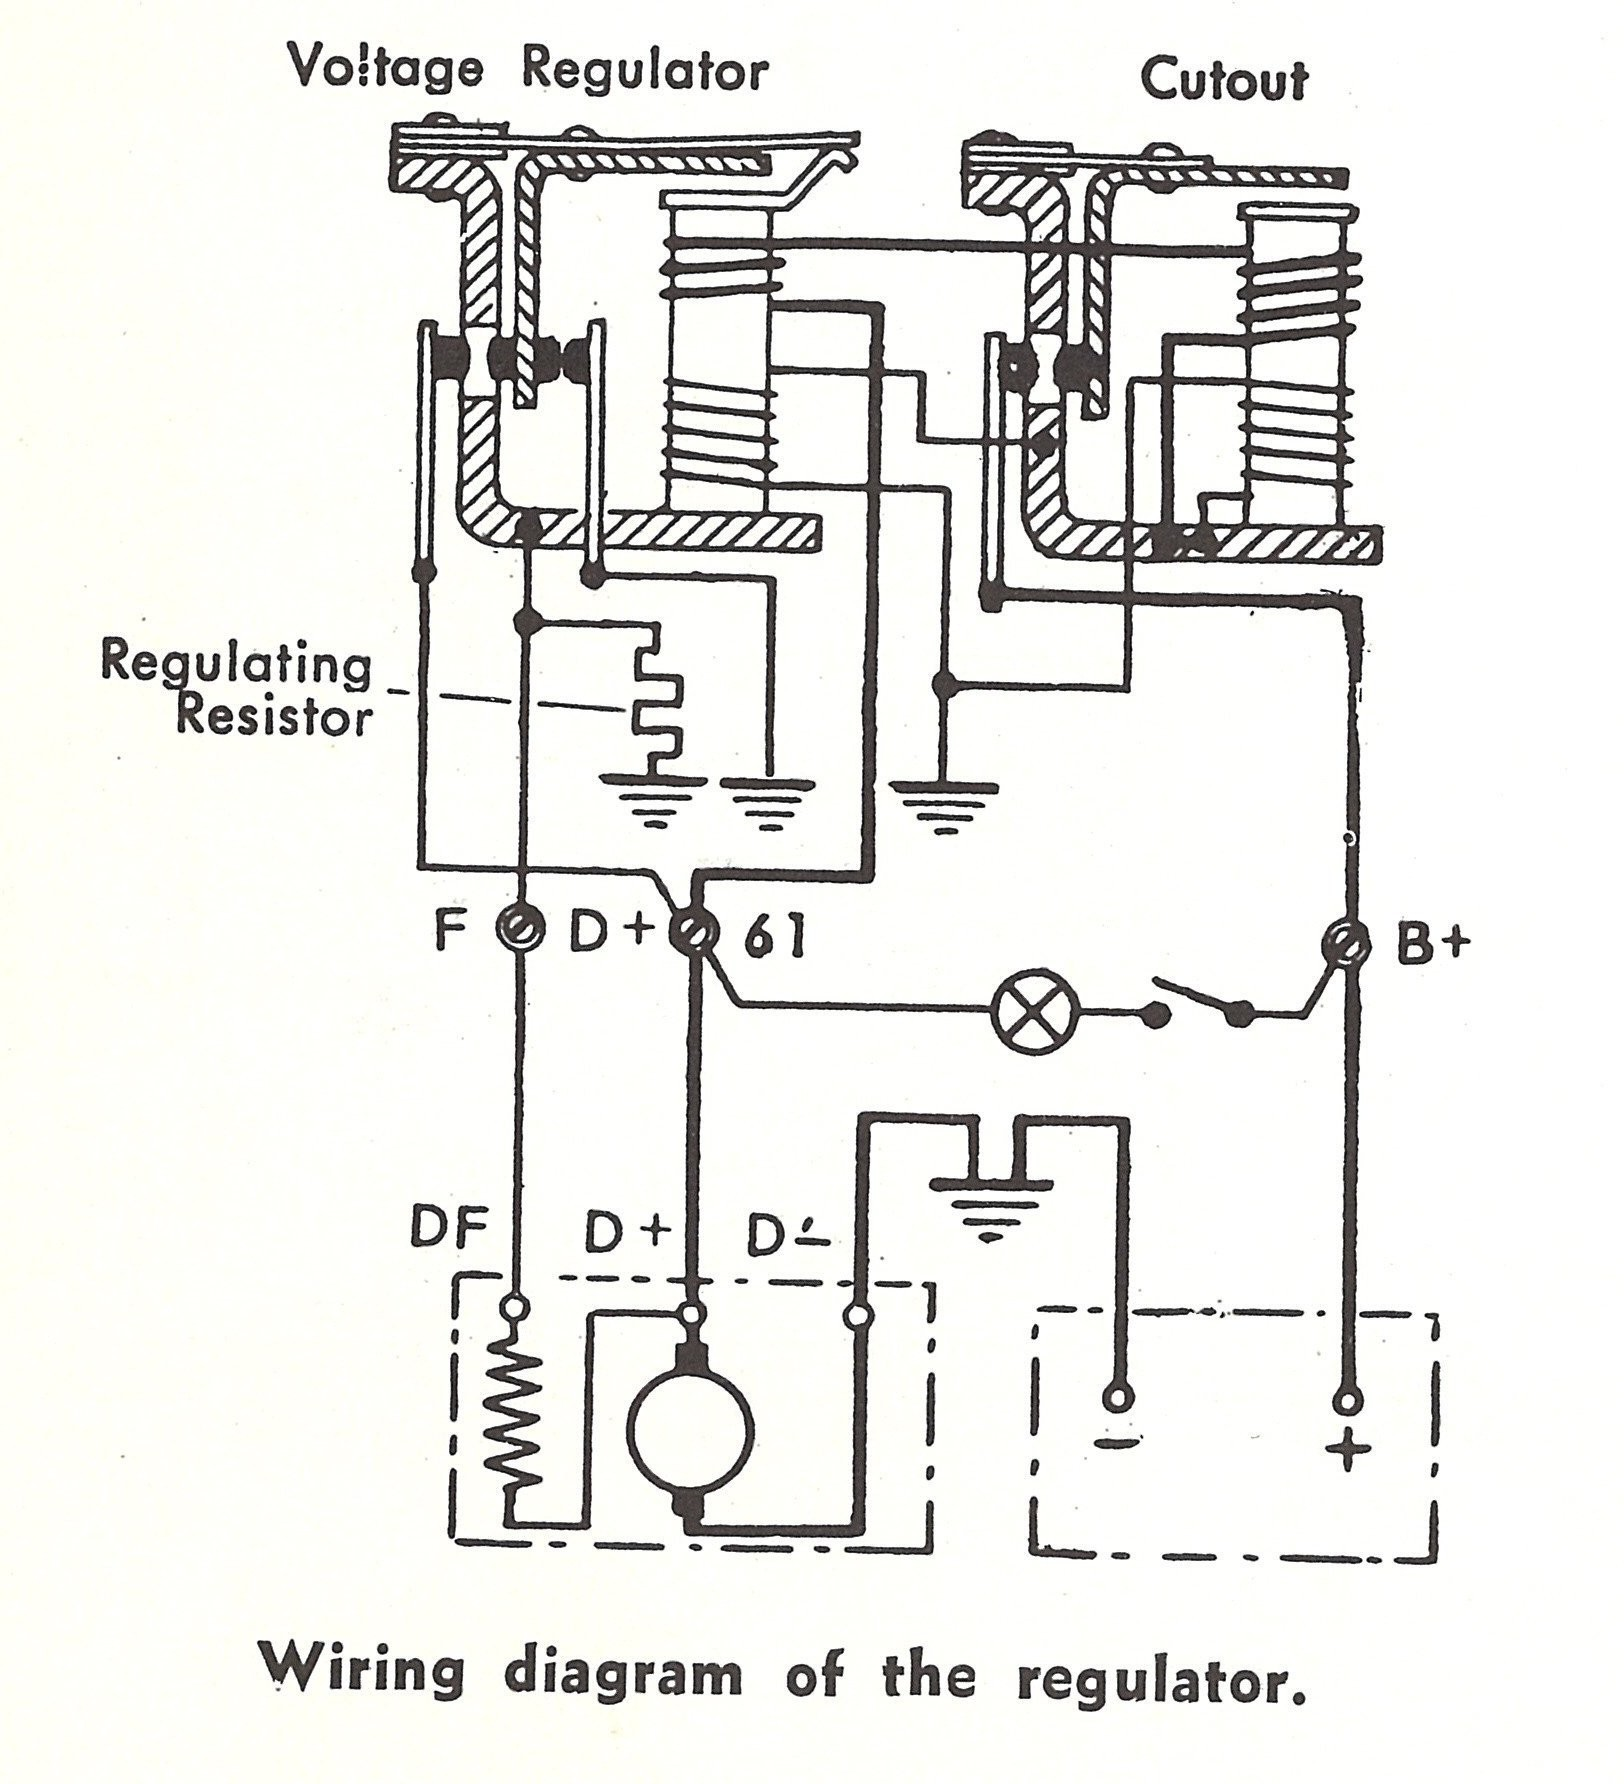 kohler command voltage regulator wiring diagram library